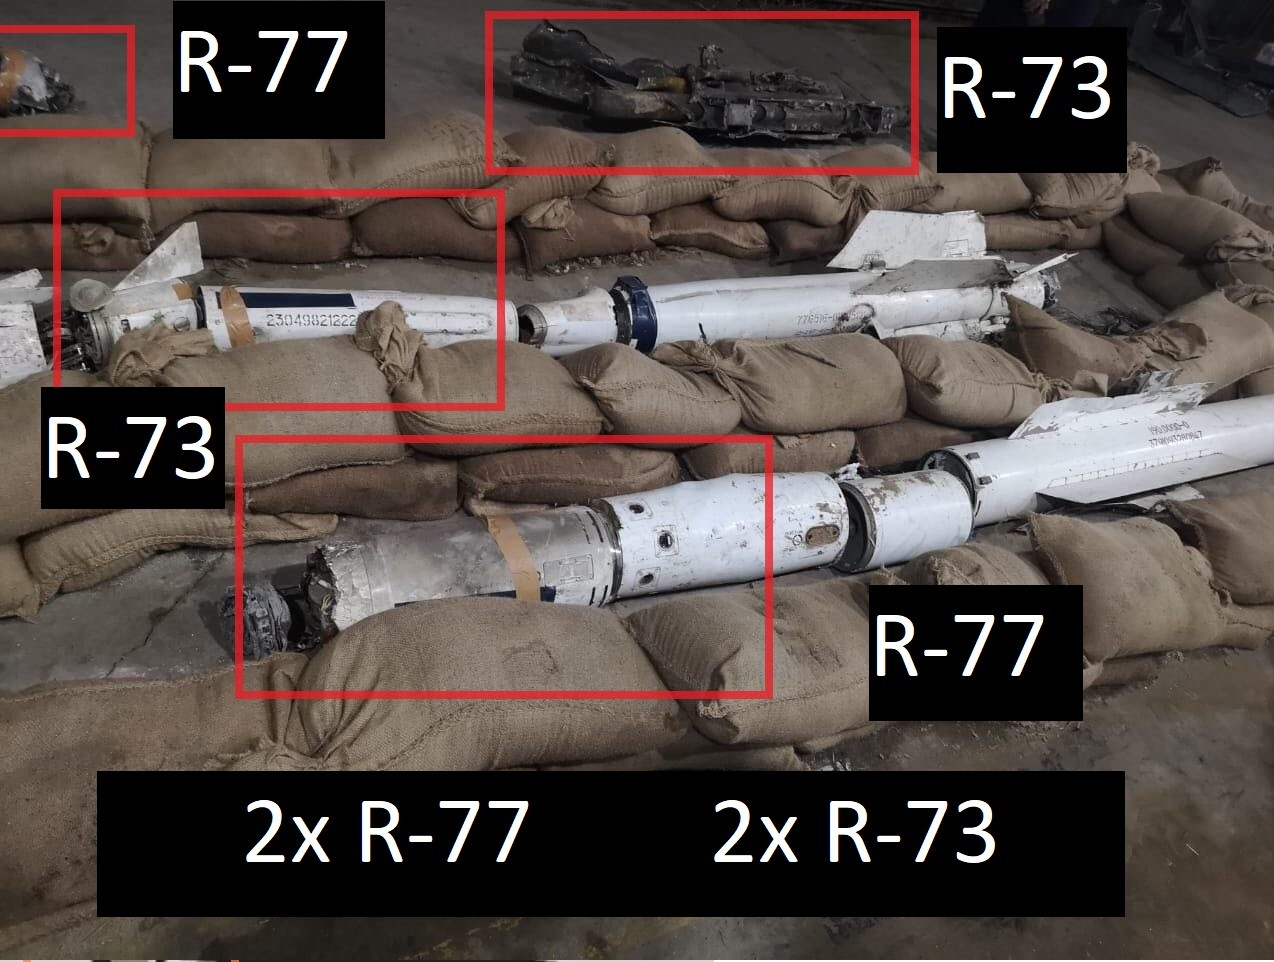 IAF Mig- 21 Bison Wreckage Suggests that Indian pilot was Unable to Fire Single Missile